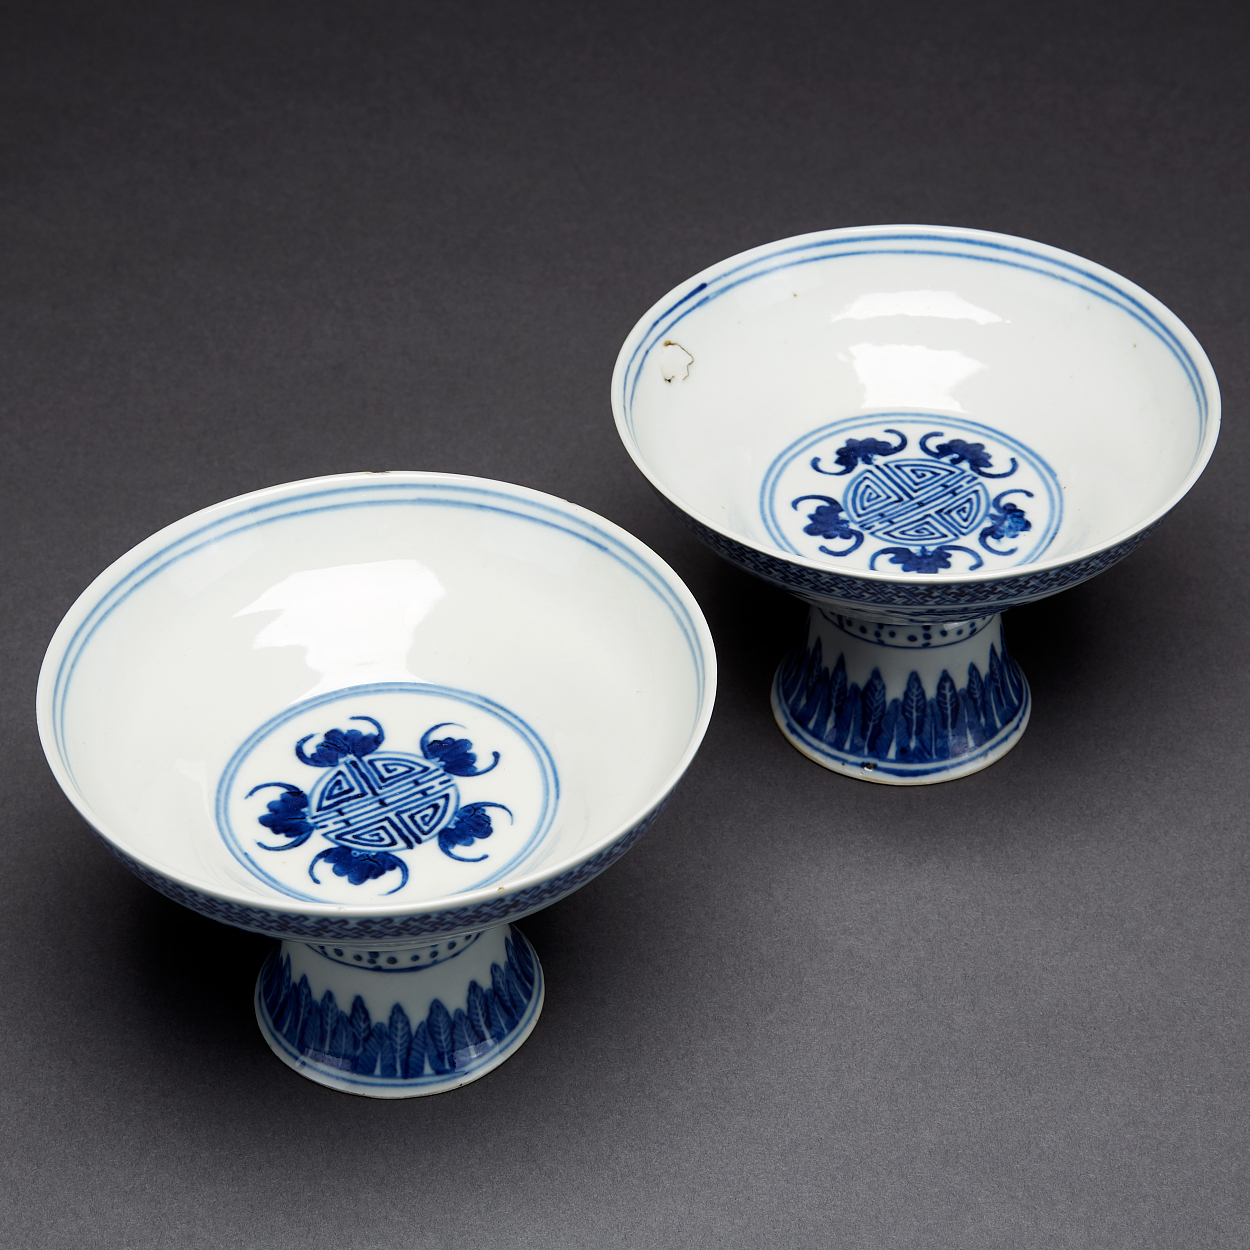 A Pair of Blue and White Stem Bowls